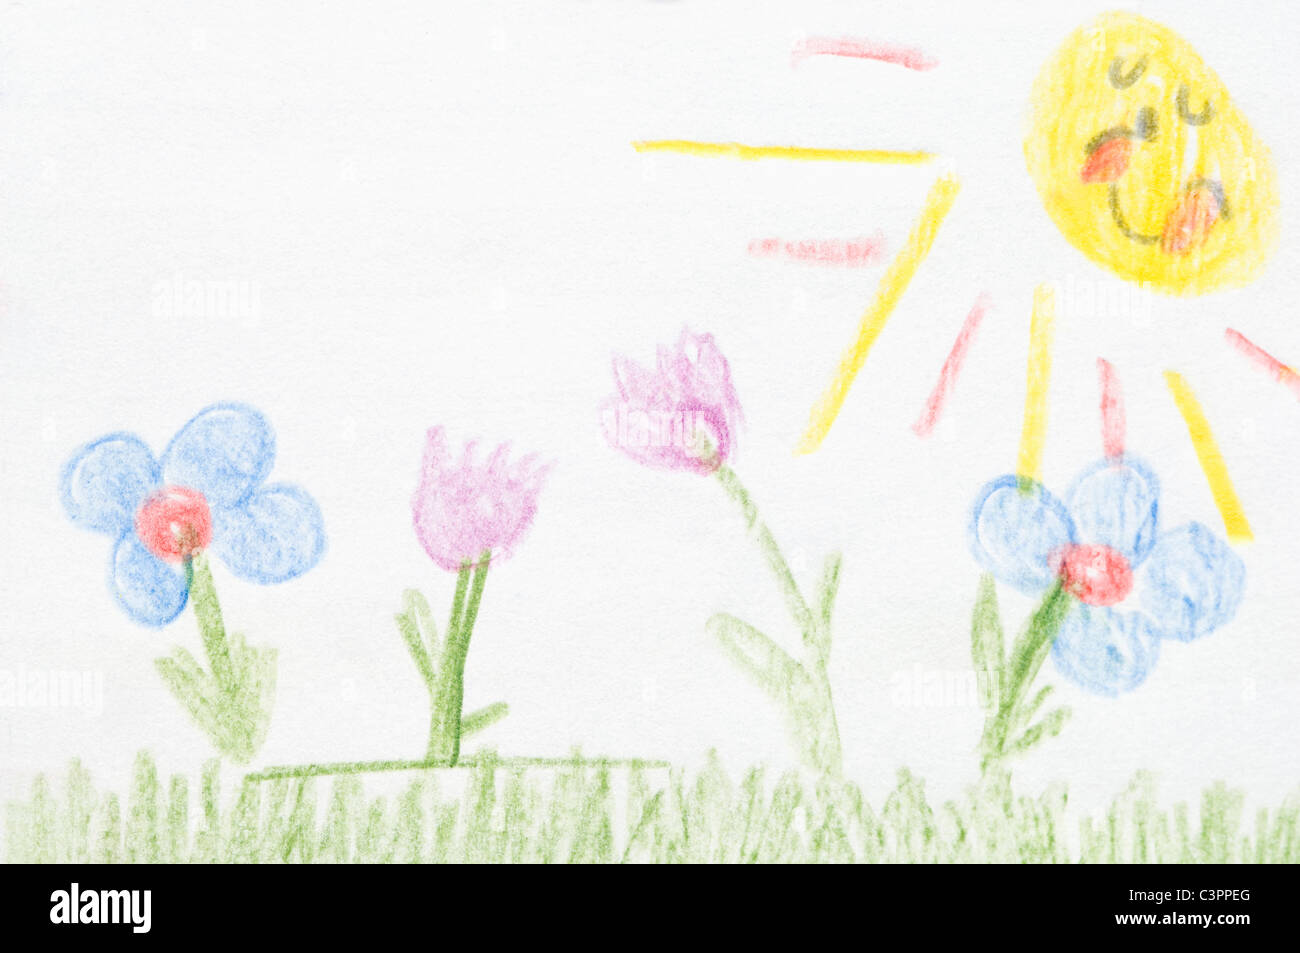 Germany, Munich, Child's drawing of nature in exercise book - Stock Image